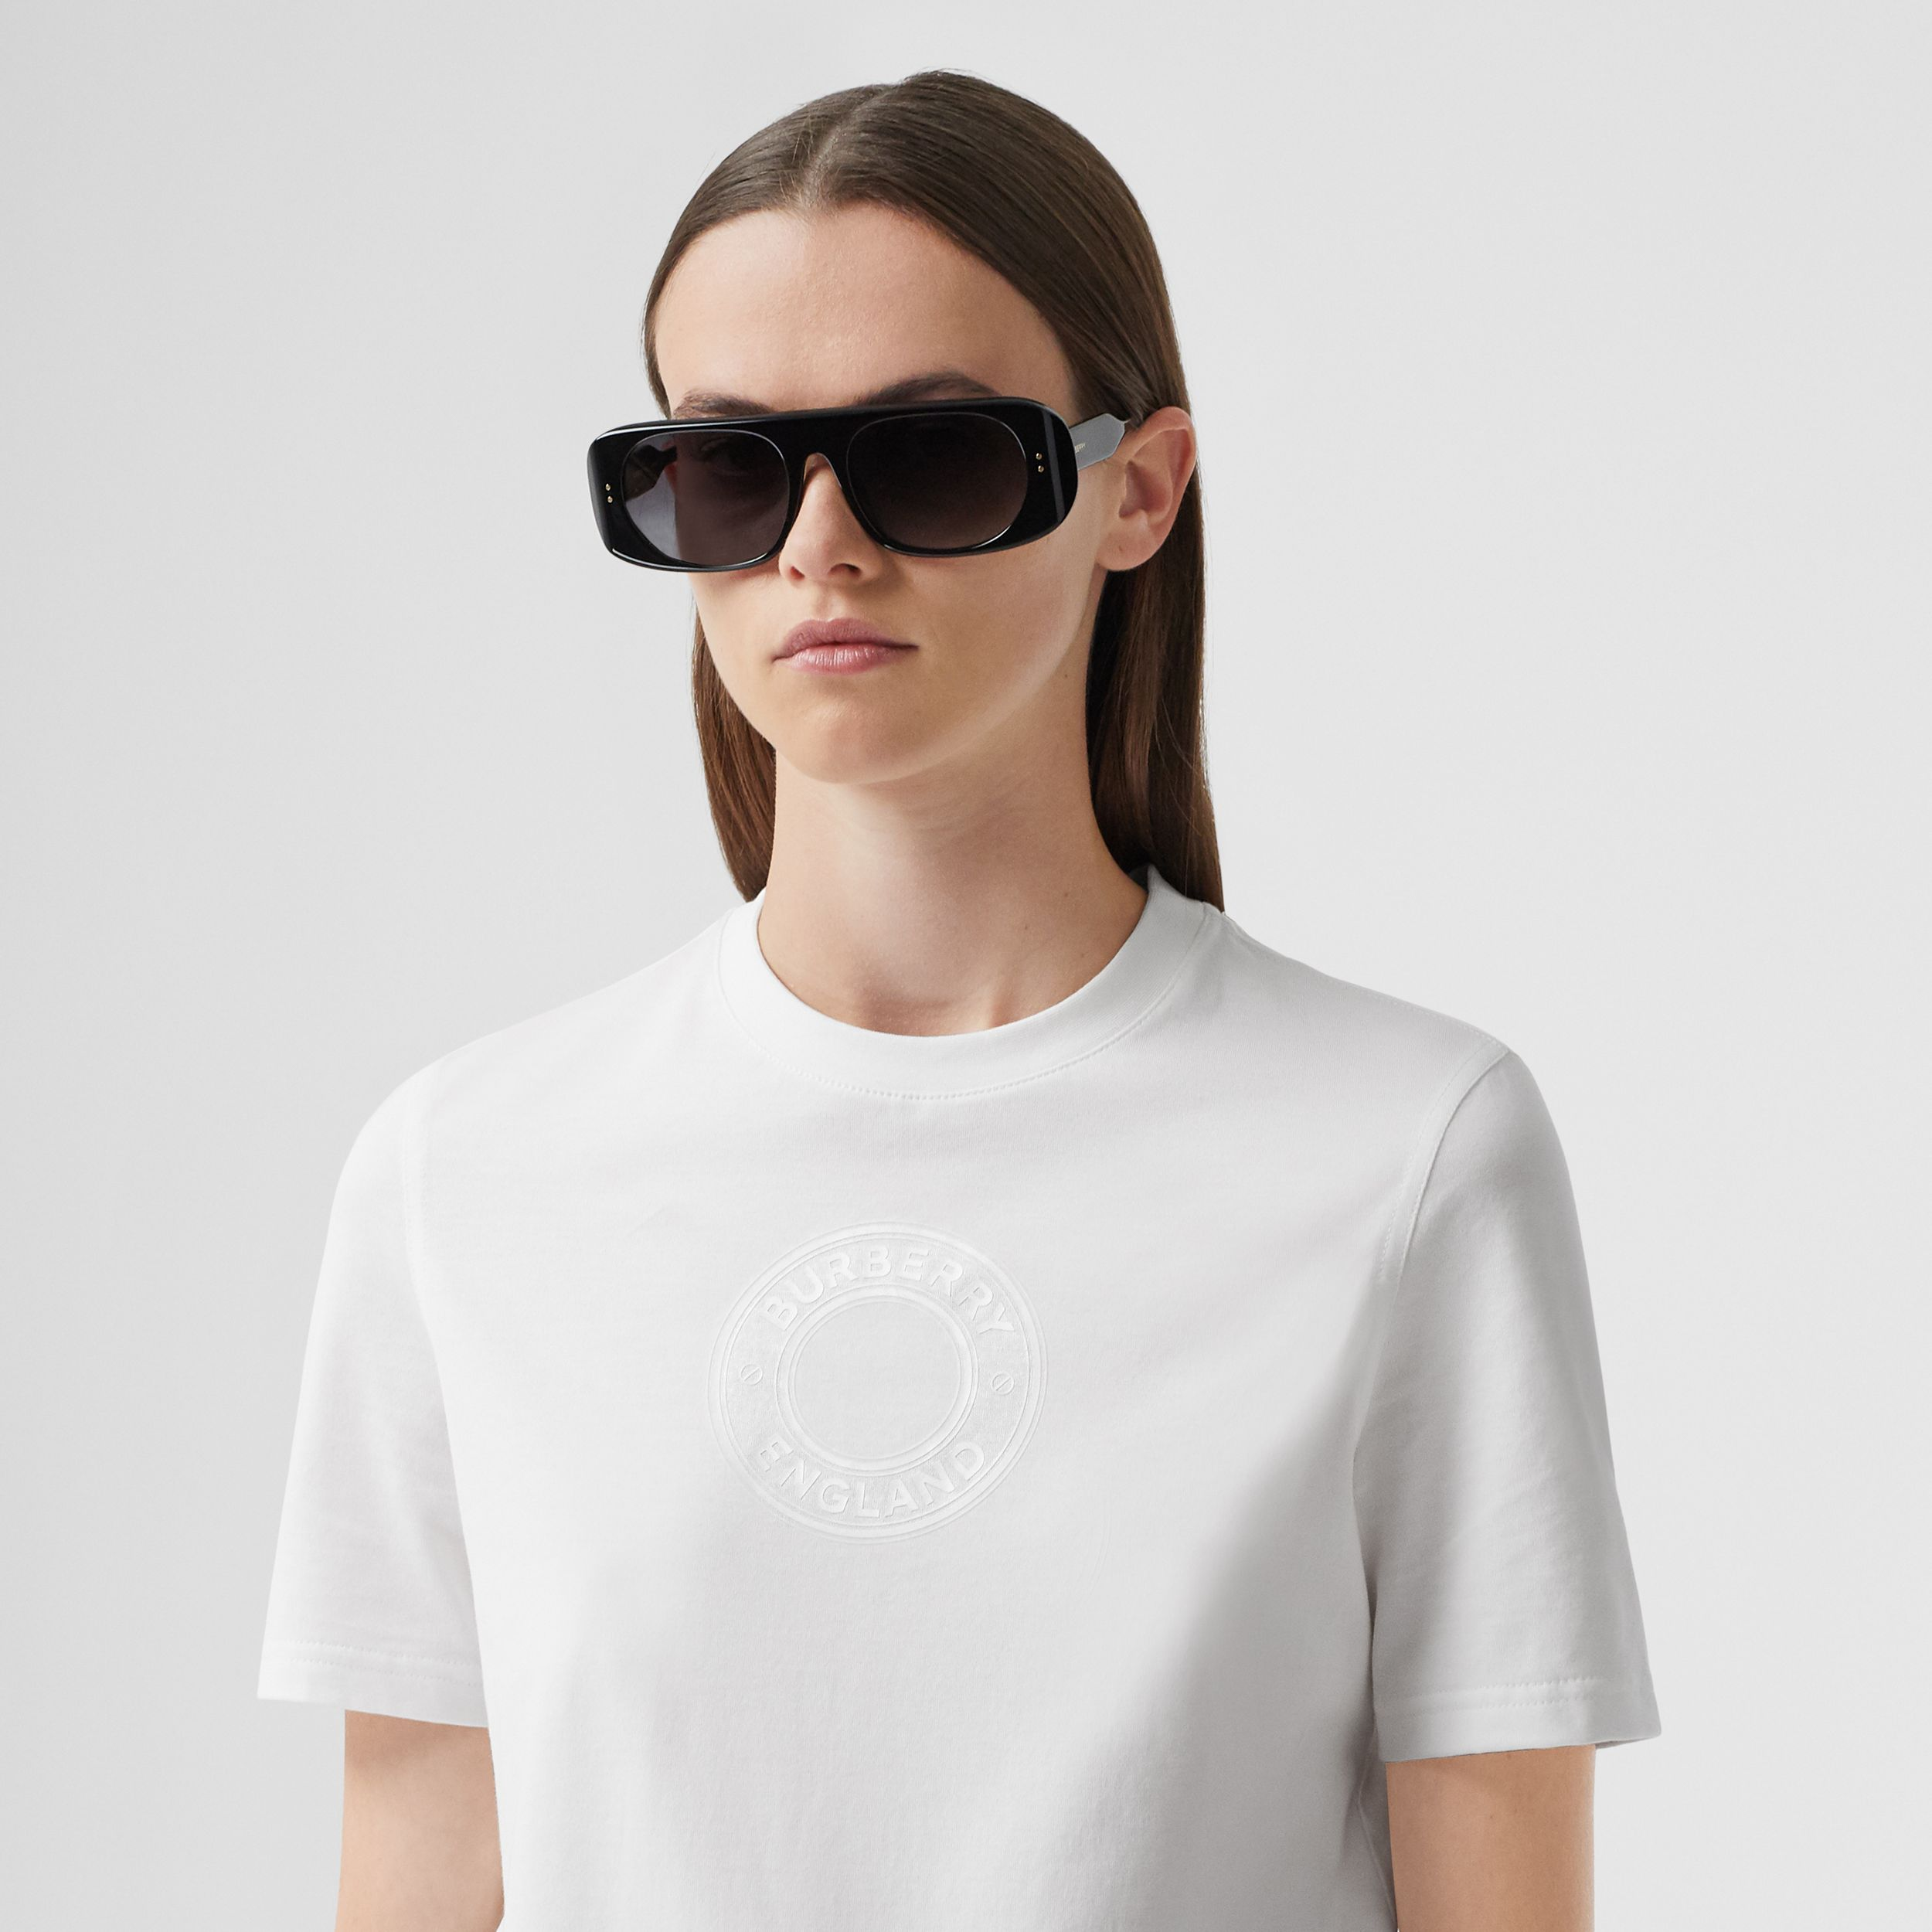 Logo Graphic Cotton T-shirt in White - Women | Burberry - 2